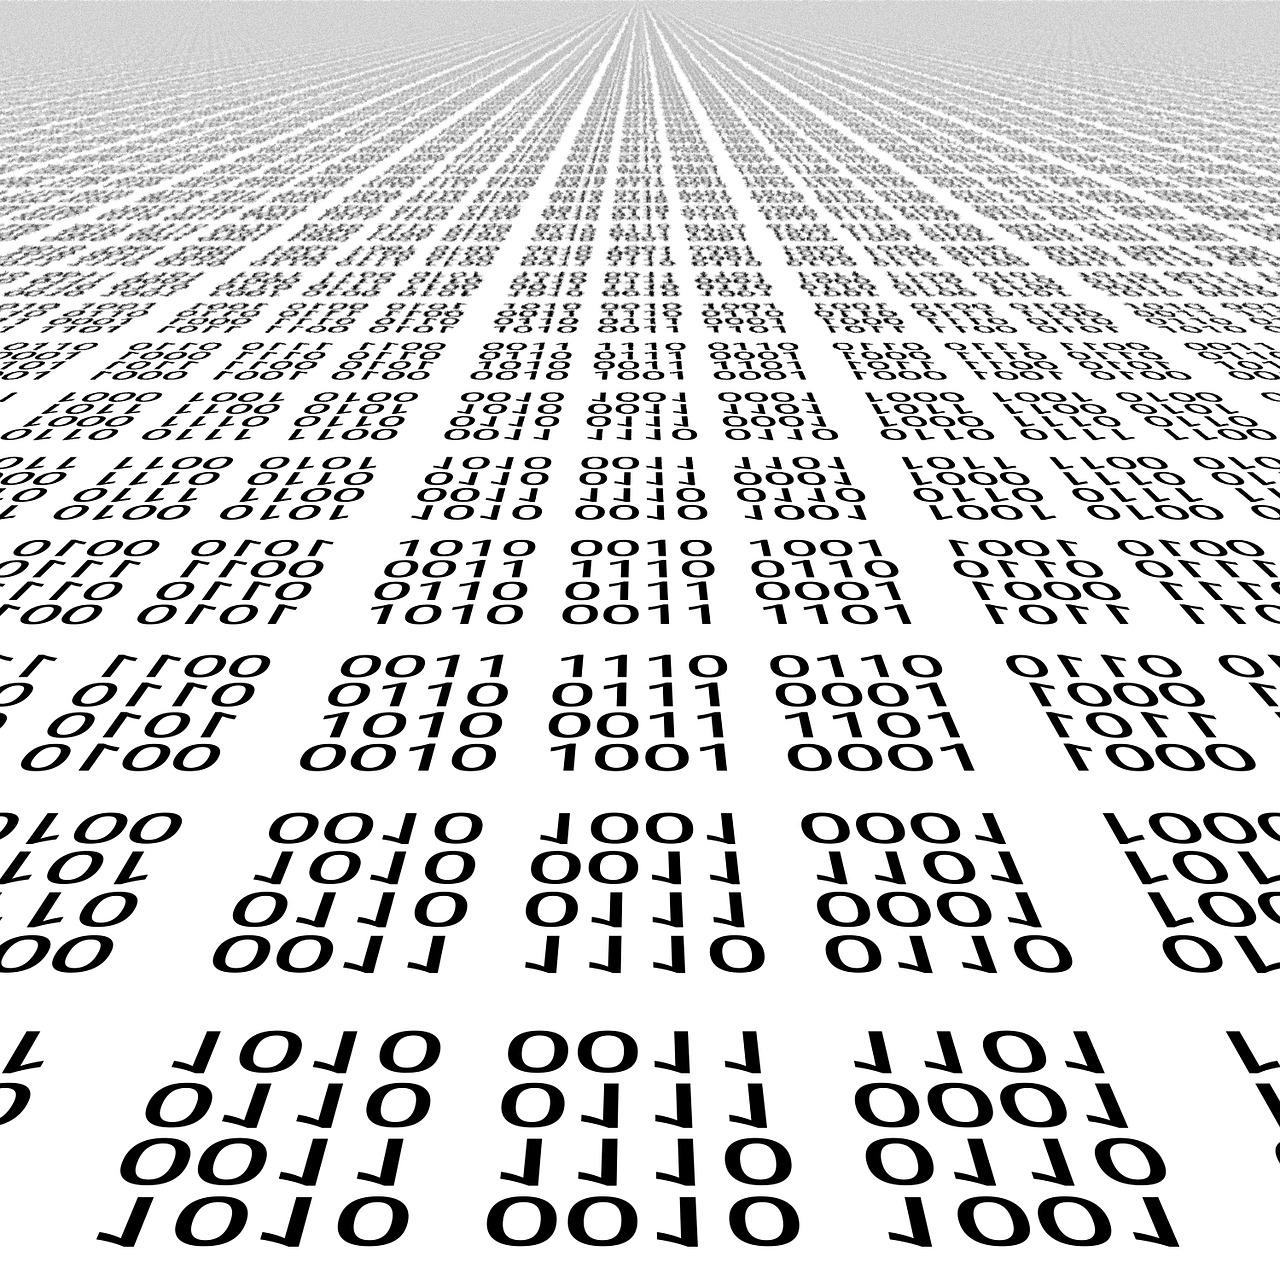 Data Archiving In The Age Of Big Data